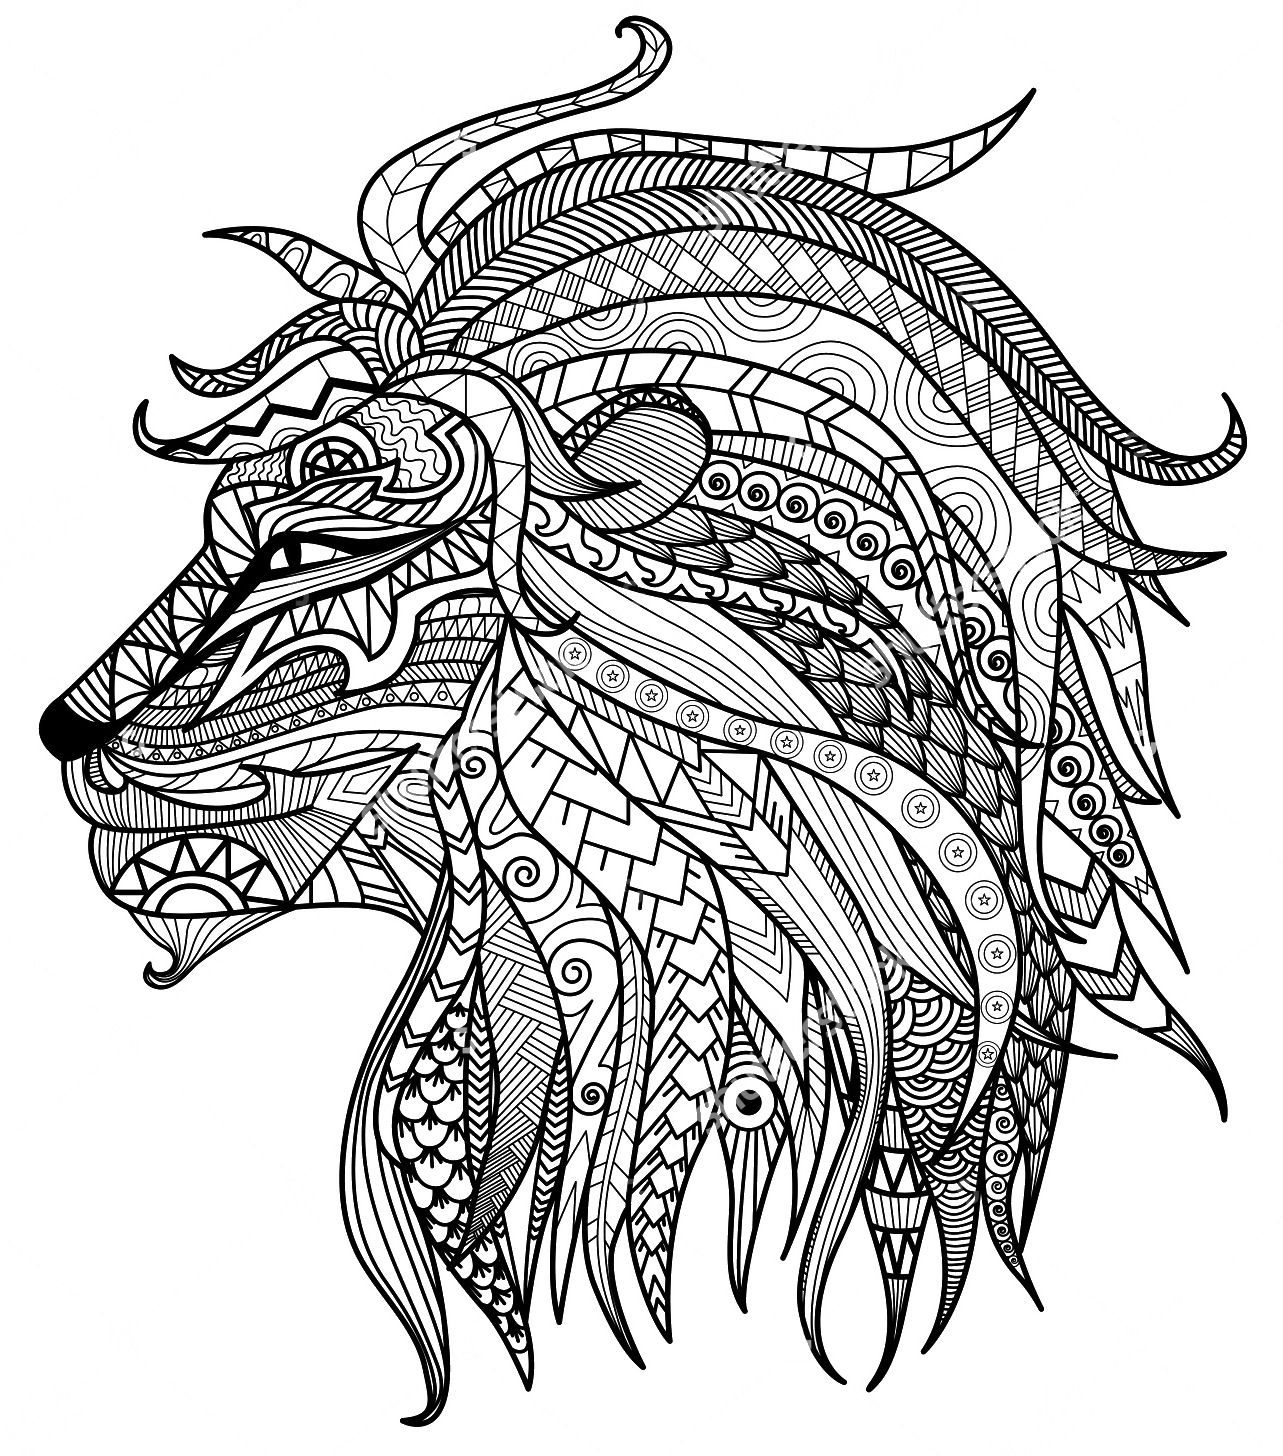 Adult Coloring Pages Lion Head | Adult Coloring Pages and Zentangled ...